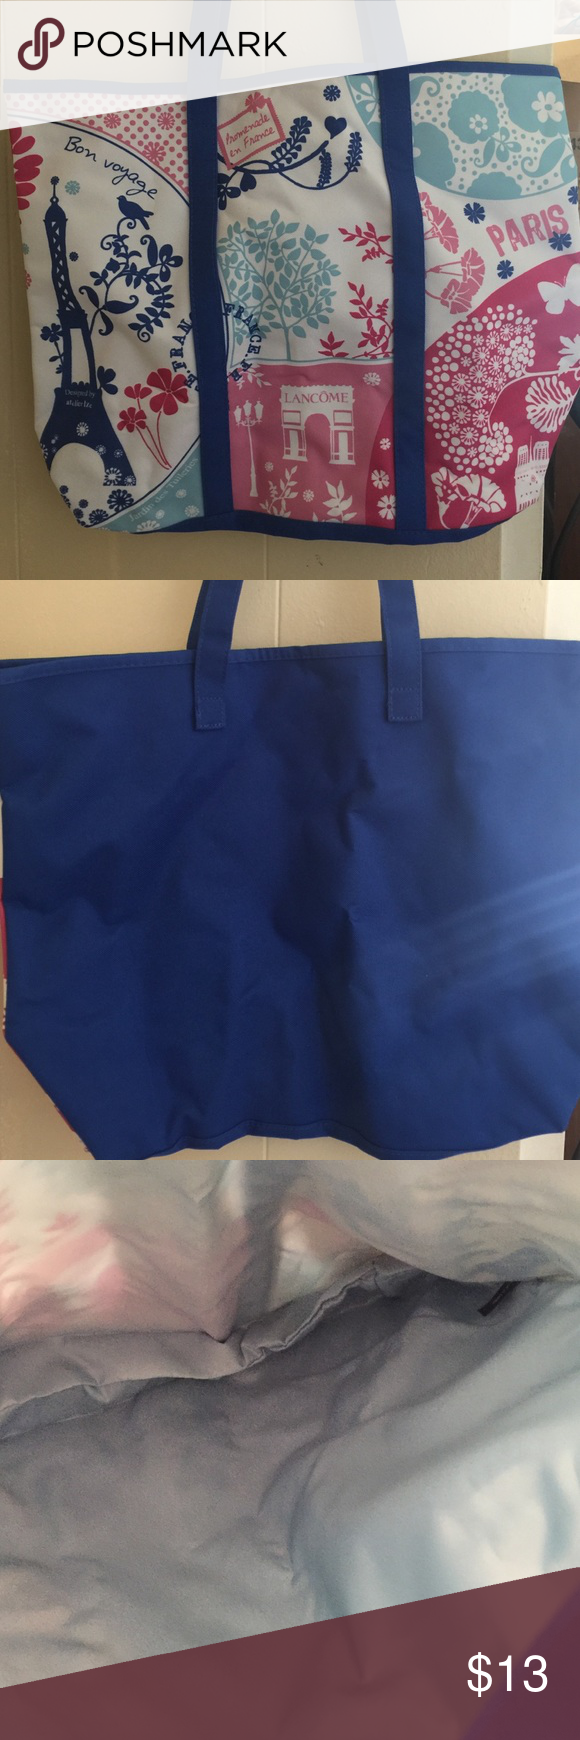 Lancôme Shopping Tote Lancôme Shopping Tote. Brand new but old style. Lancome Bags Totes